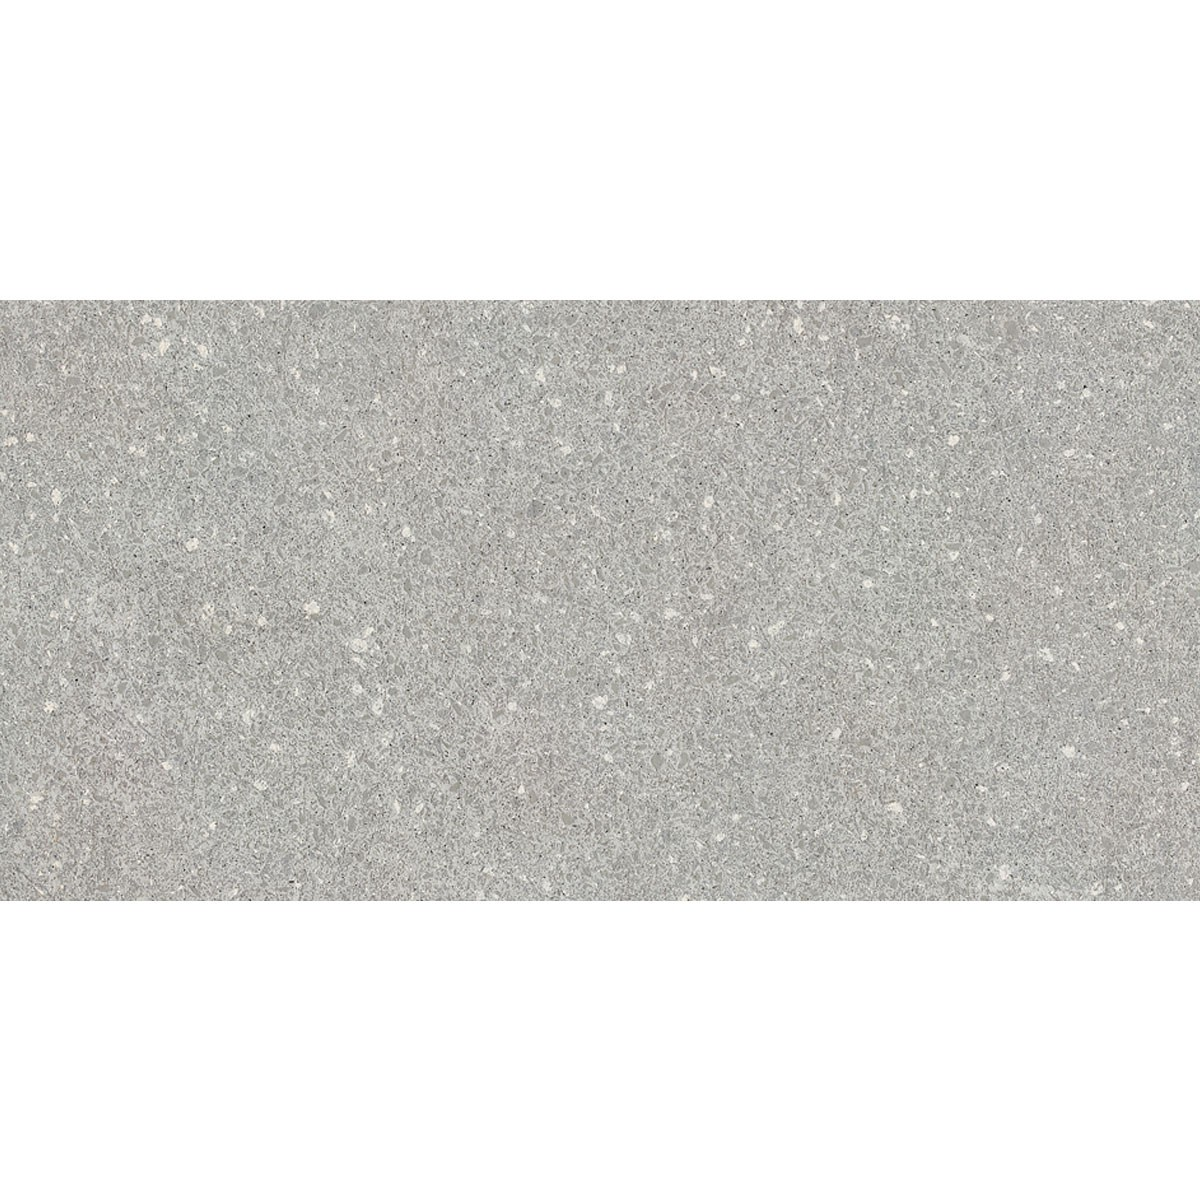 24 x 12 In. Gray Porcelain Floor Tile - 8 Pcs/Case (15.50 sq.ft/Case) (MS60BP)